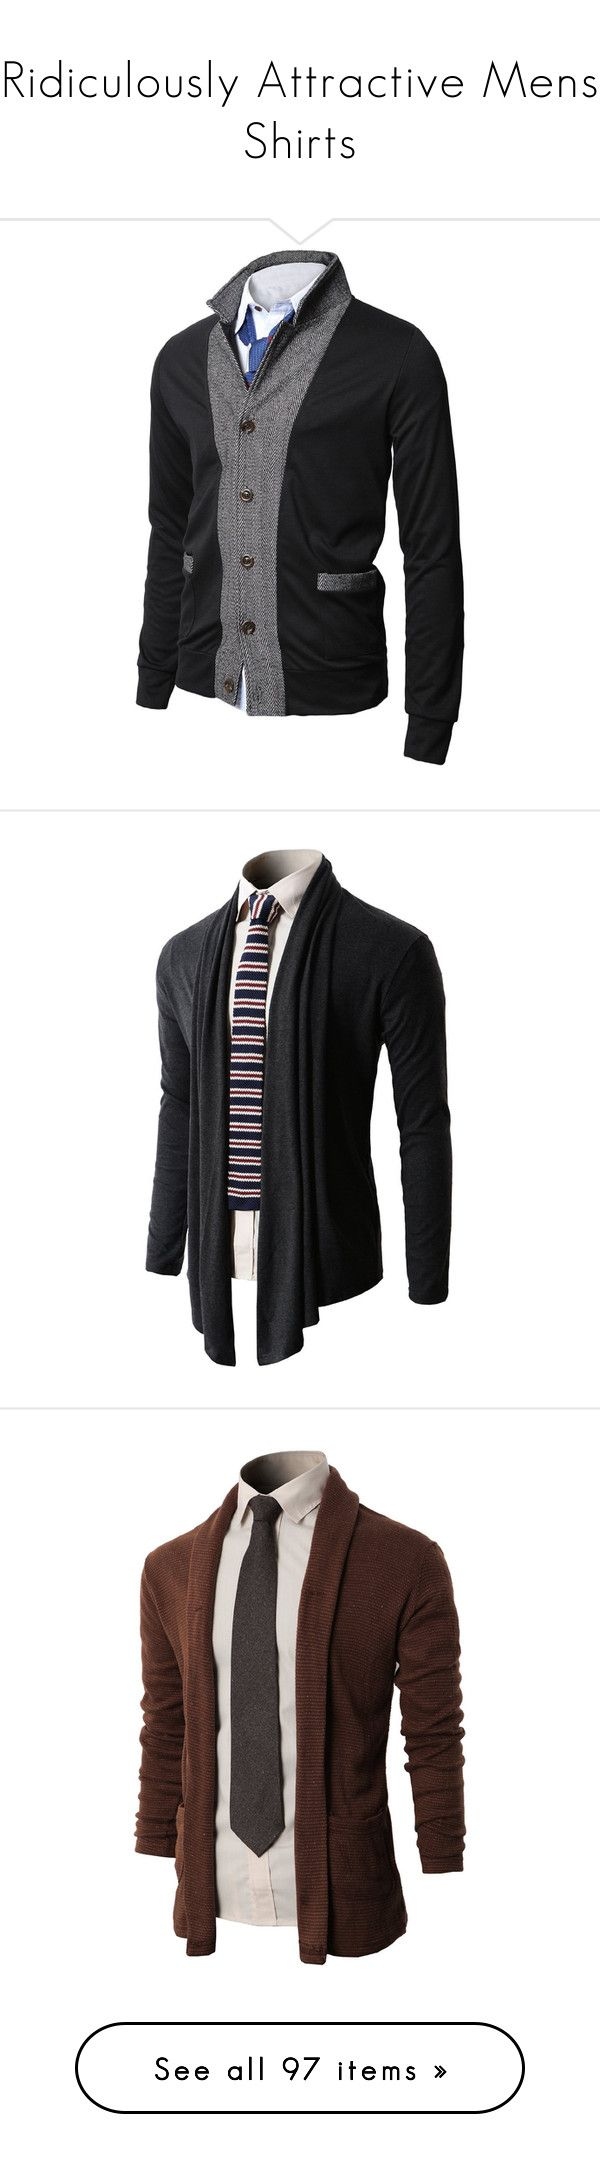 """""""Ridiculously Attractive Mens Shirts"""" by kahluacupcakes ❤ liked on Polyvore featuring mens, men's clothing, men's sweaters, men, men's outerwear, menswear, guy, blusas de frio masculina, suits and guys"""